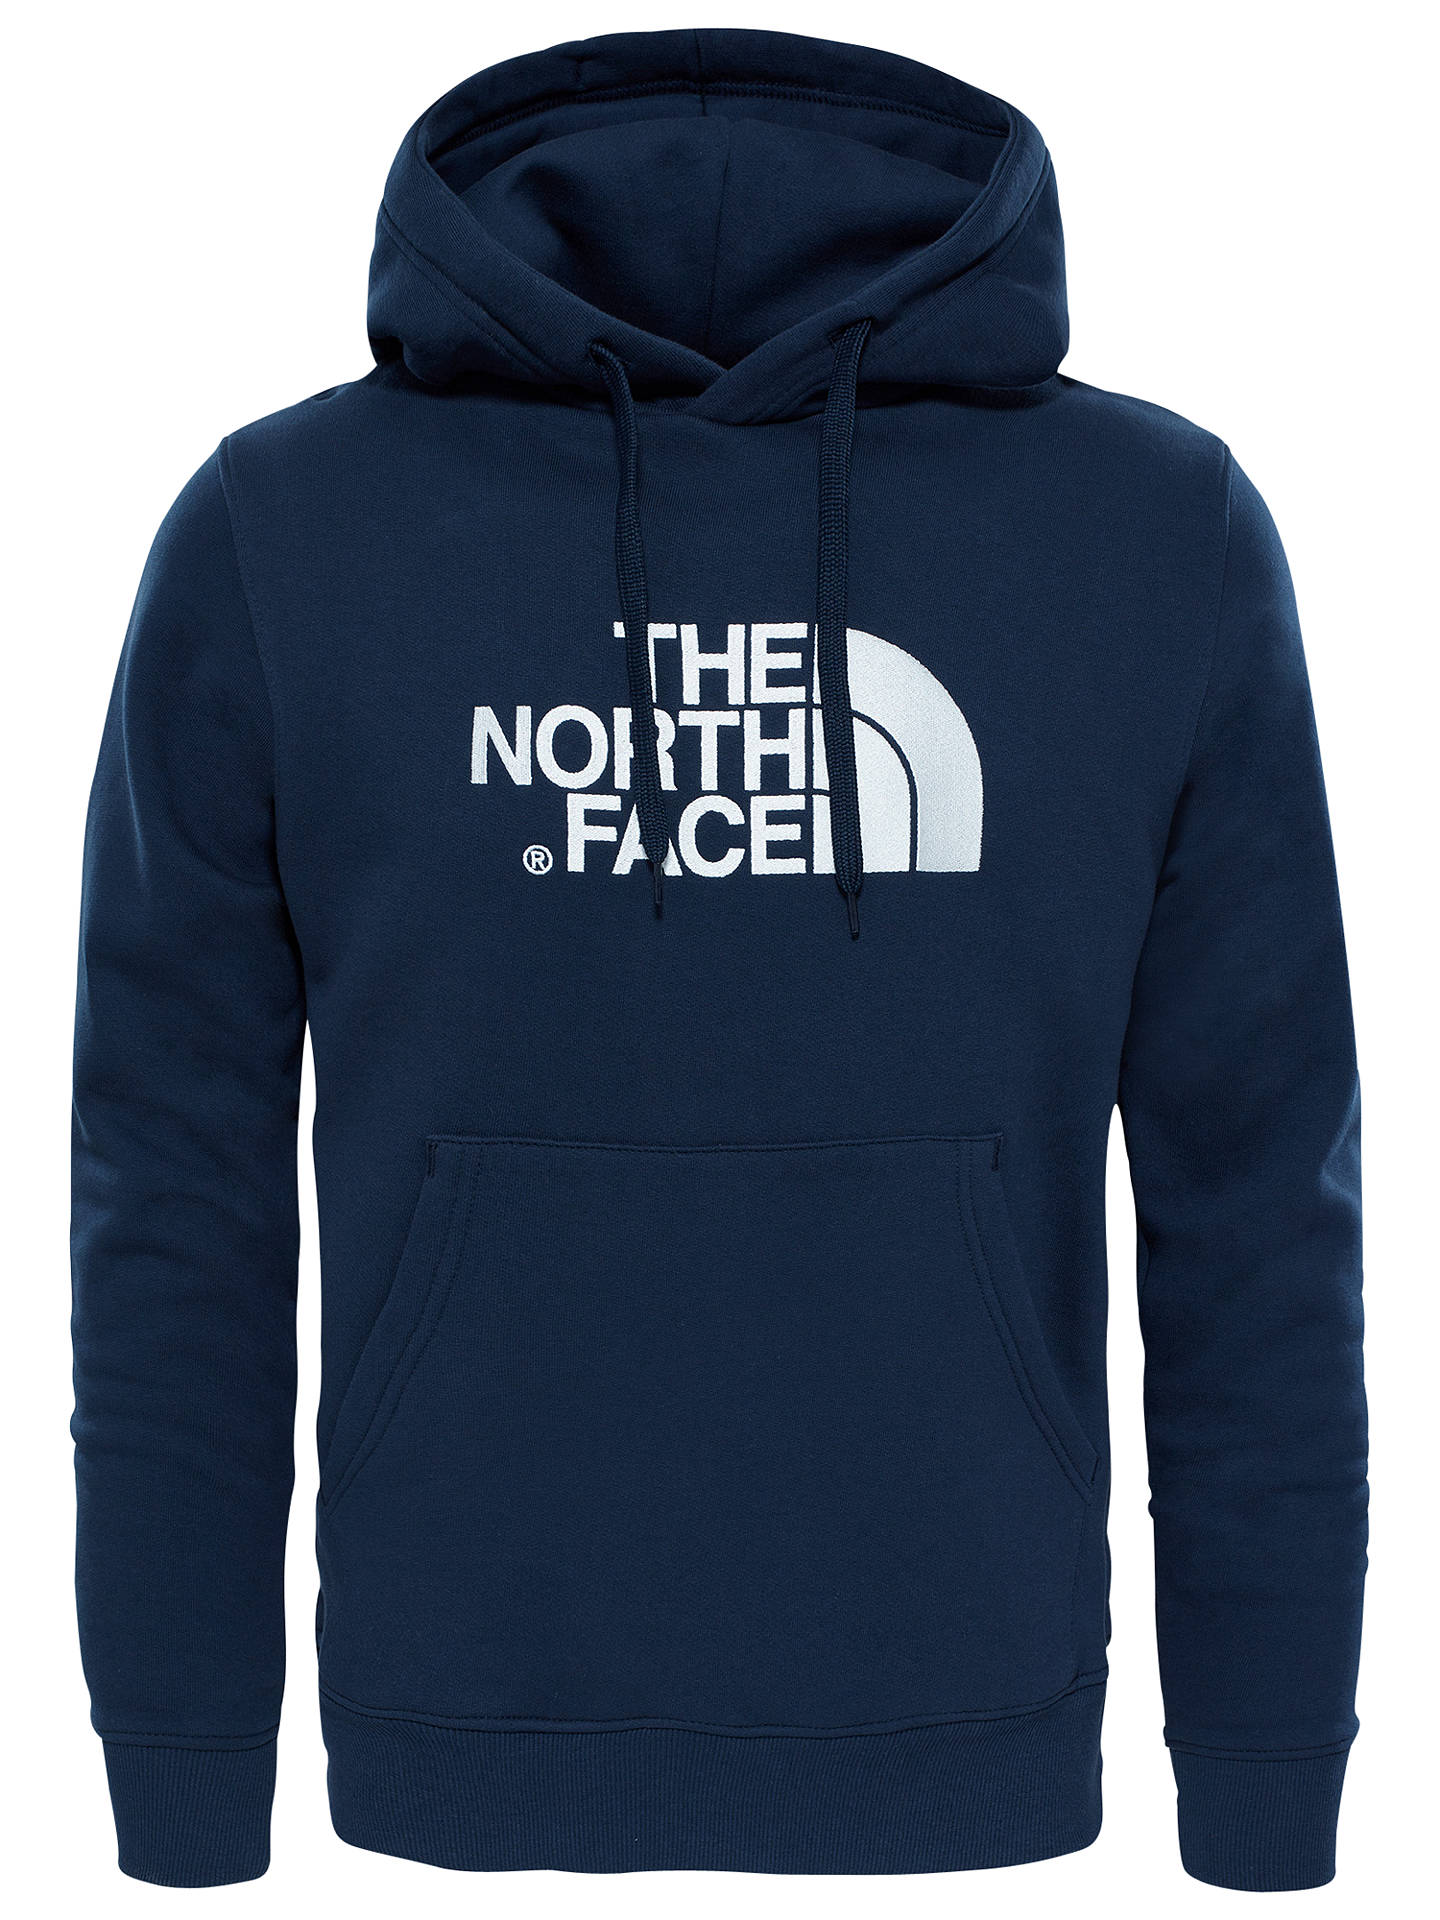 0e7413851 The North Face Drew Peak Hoodie, Navy at John Lewis & Partners